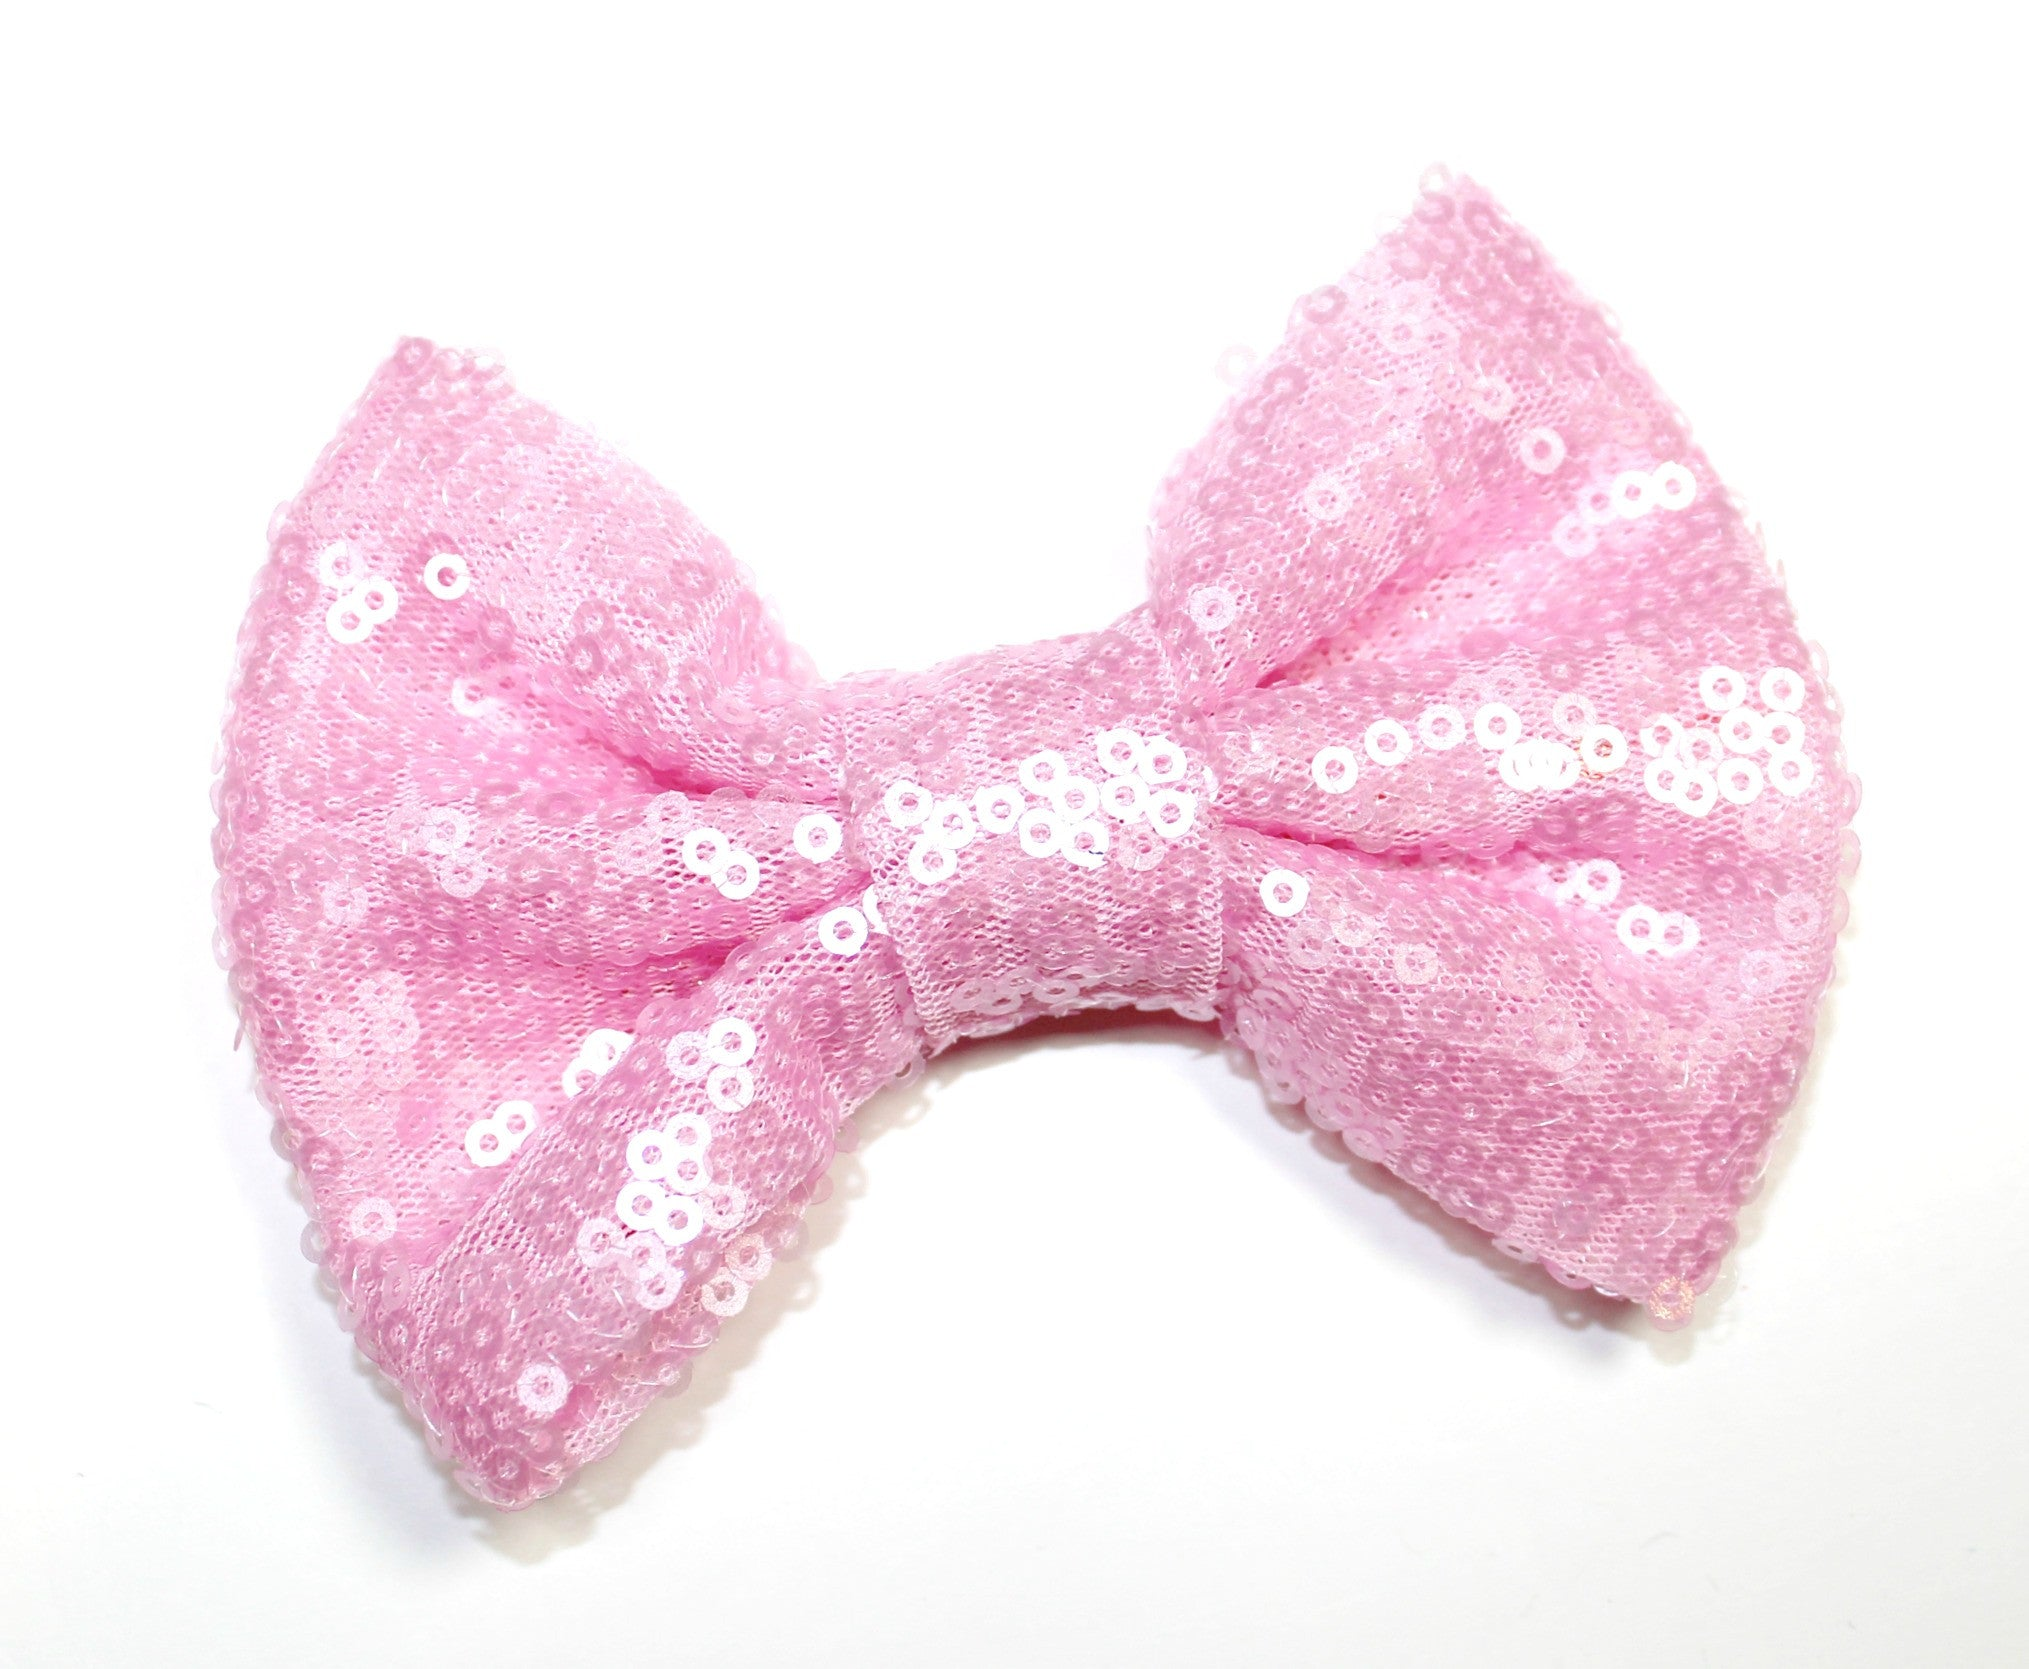 Large Sequin Bow - Light Pink - shabbyflowers.com